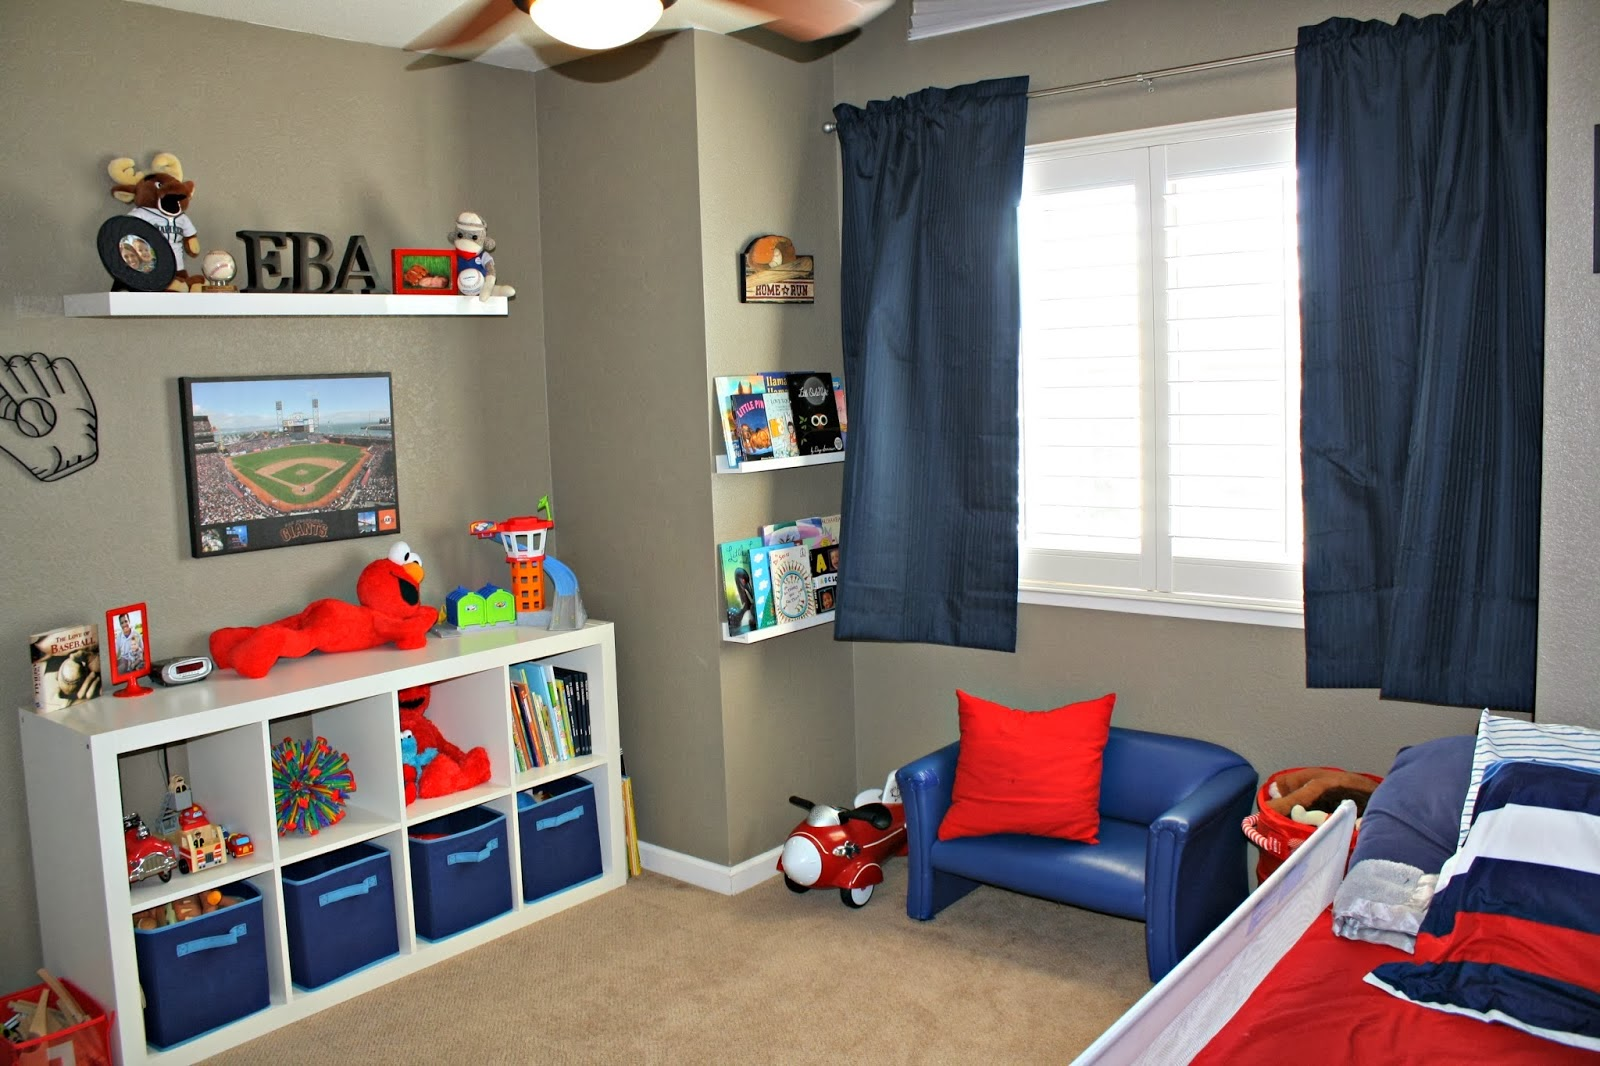 1 Year Old Room Ideas One year old bedroom ideas home safe project stay at home mommy sisterspd